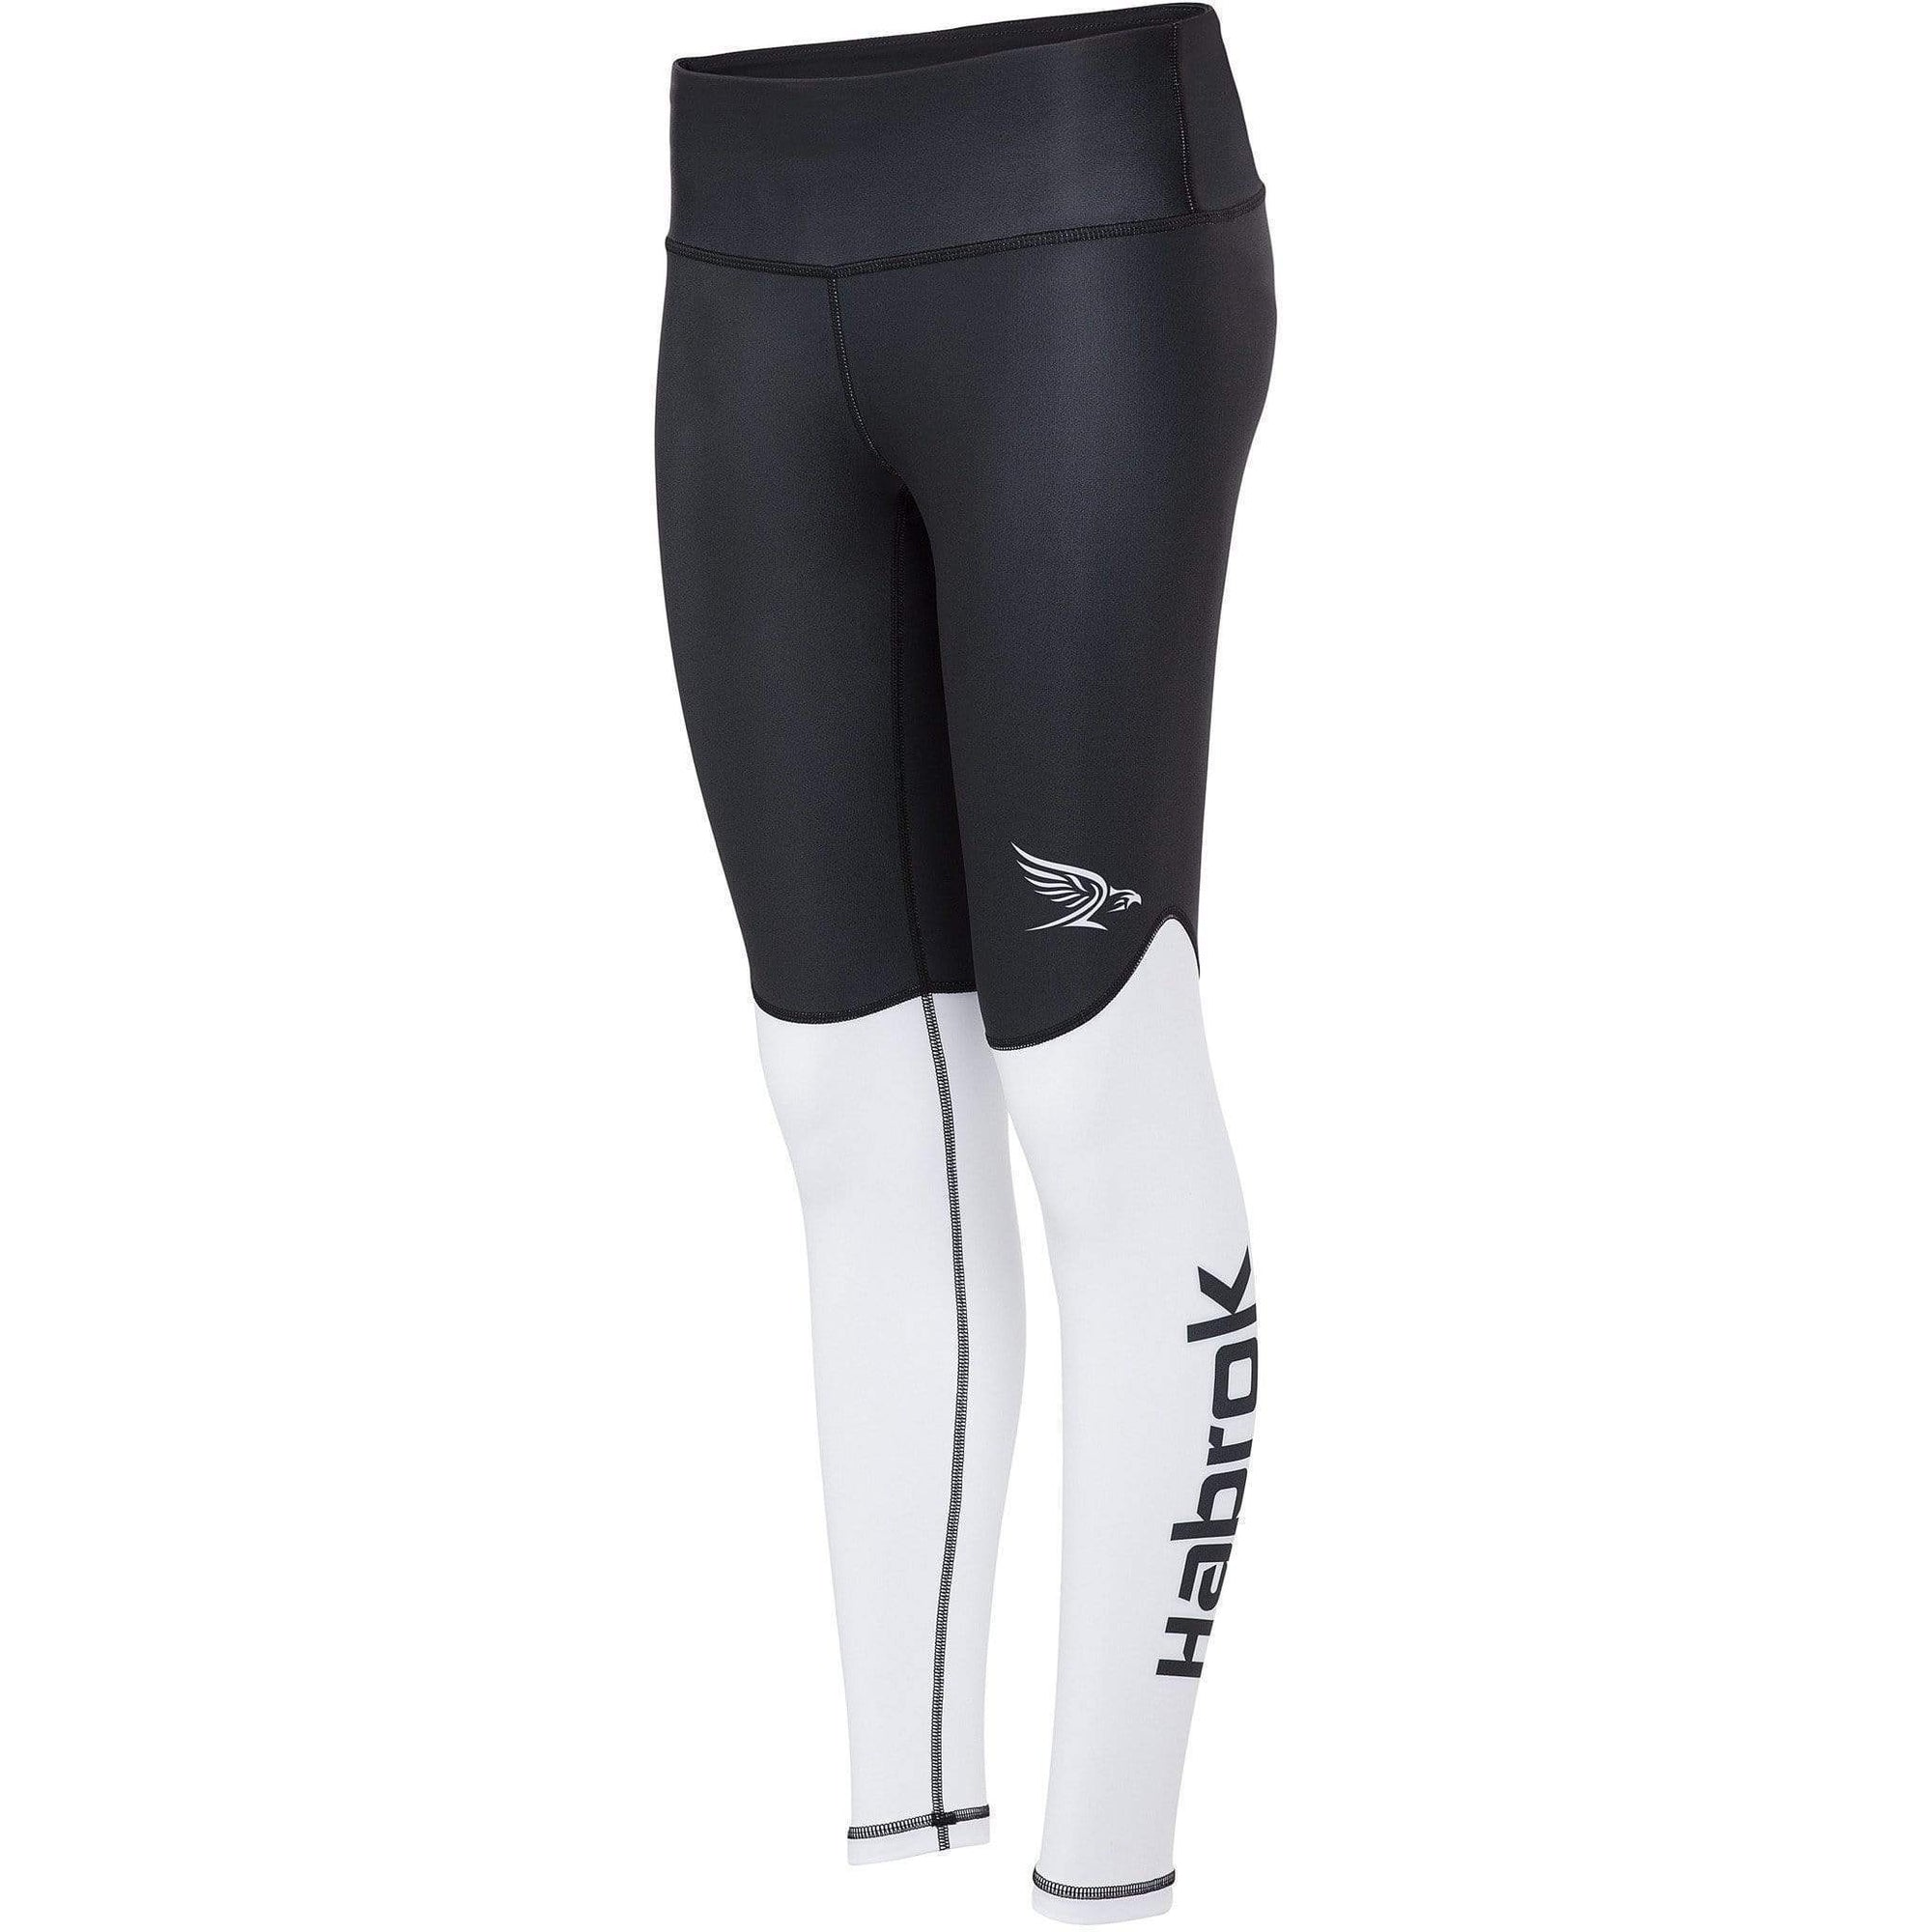 Habrok Spats XS / BLACK Transform 2.5 Spats | Women 680334794563